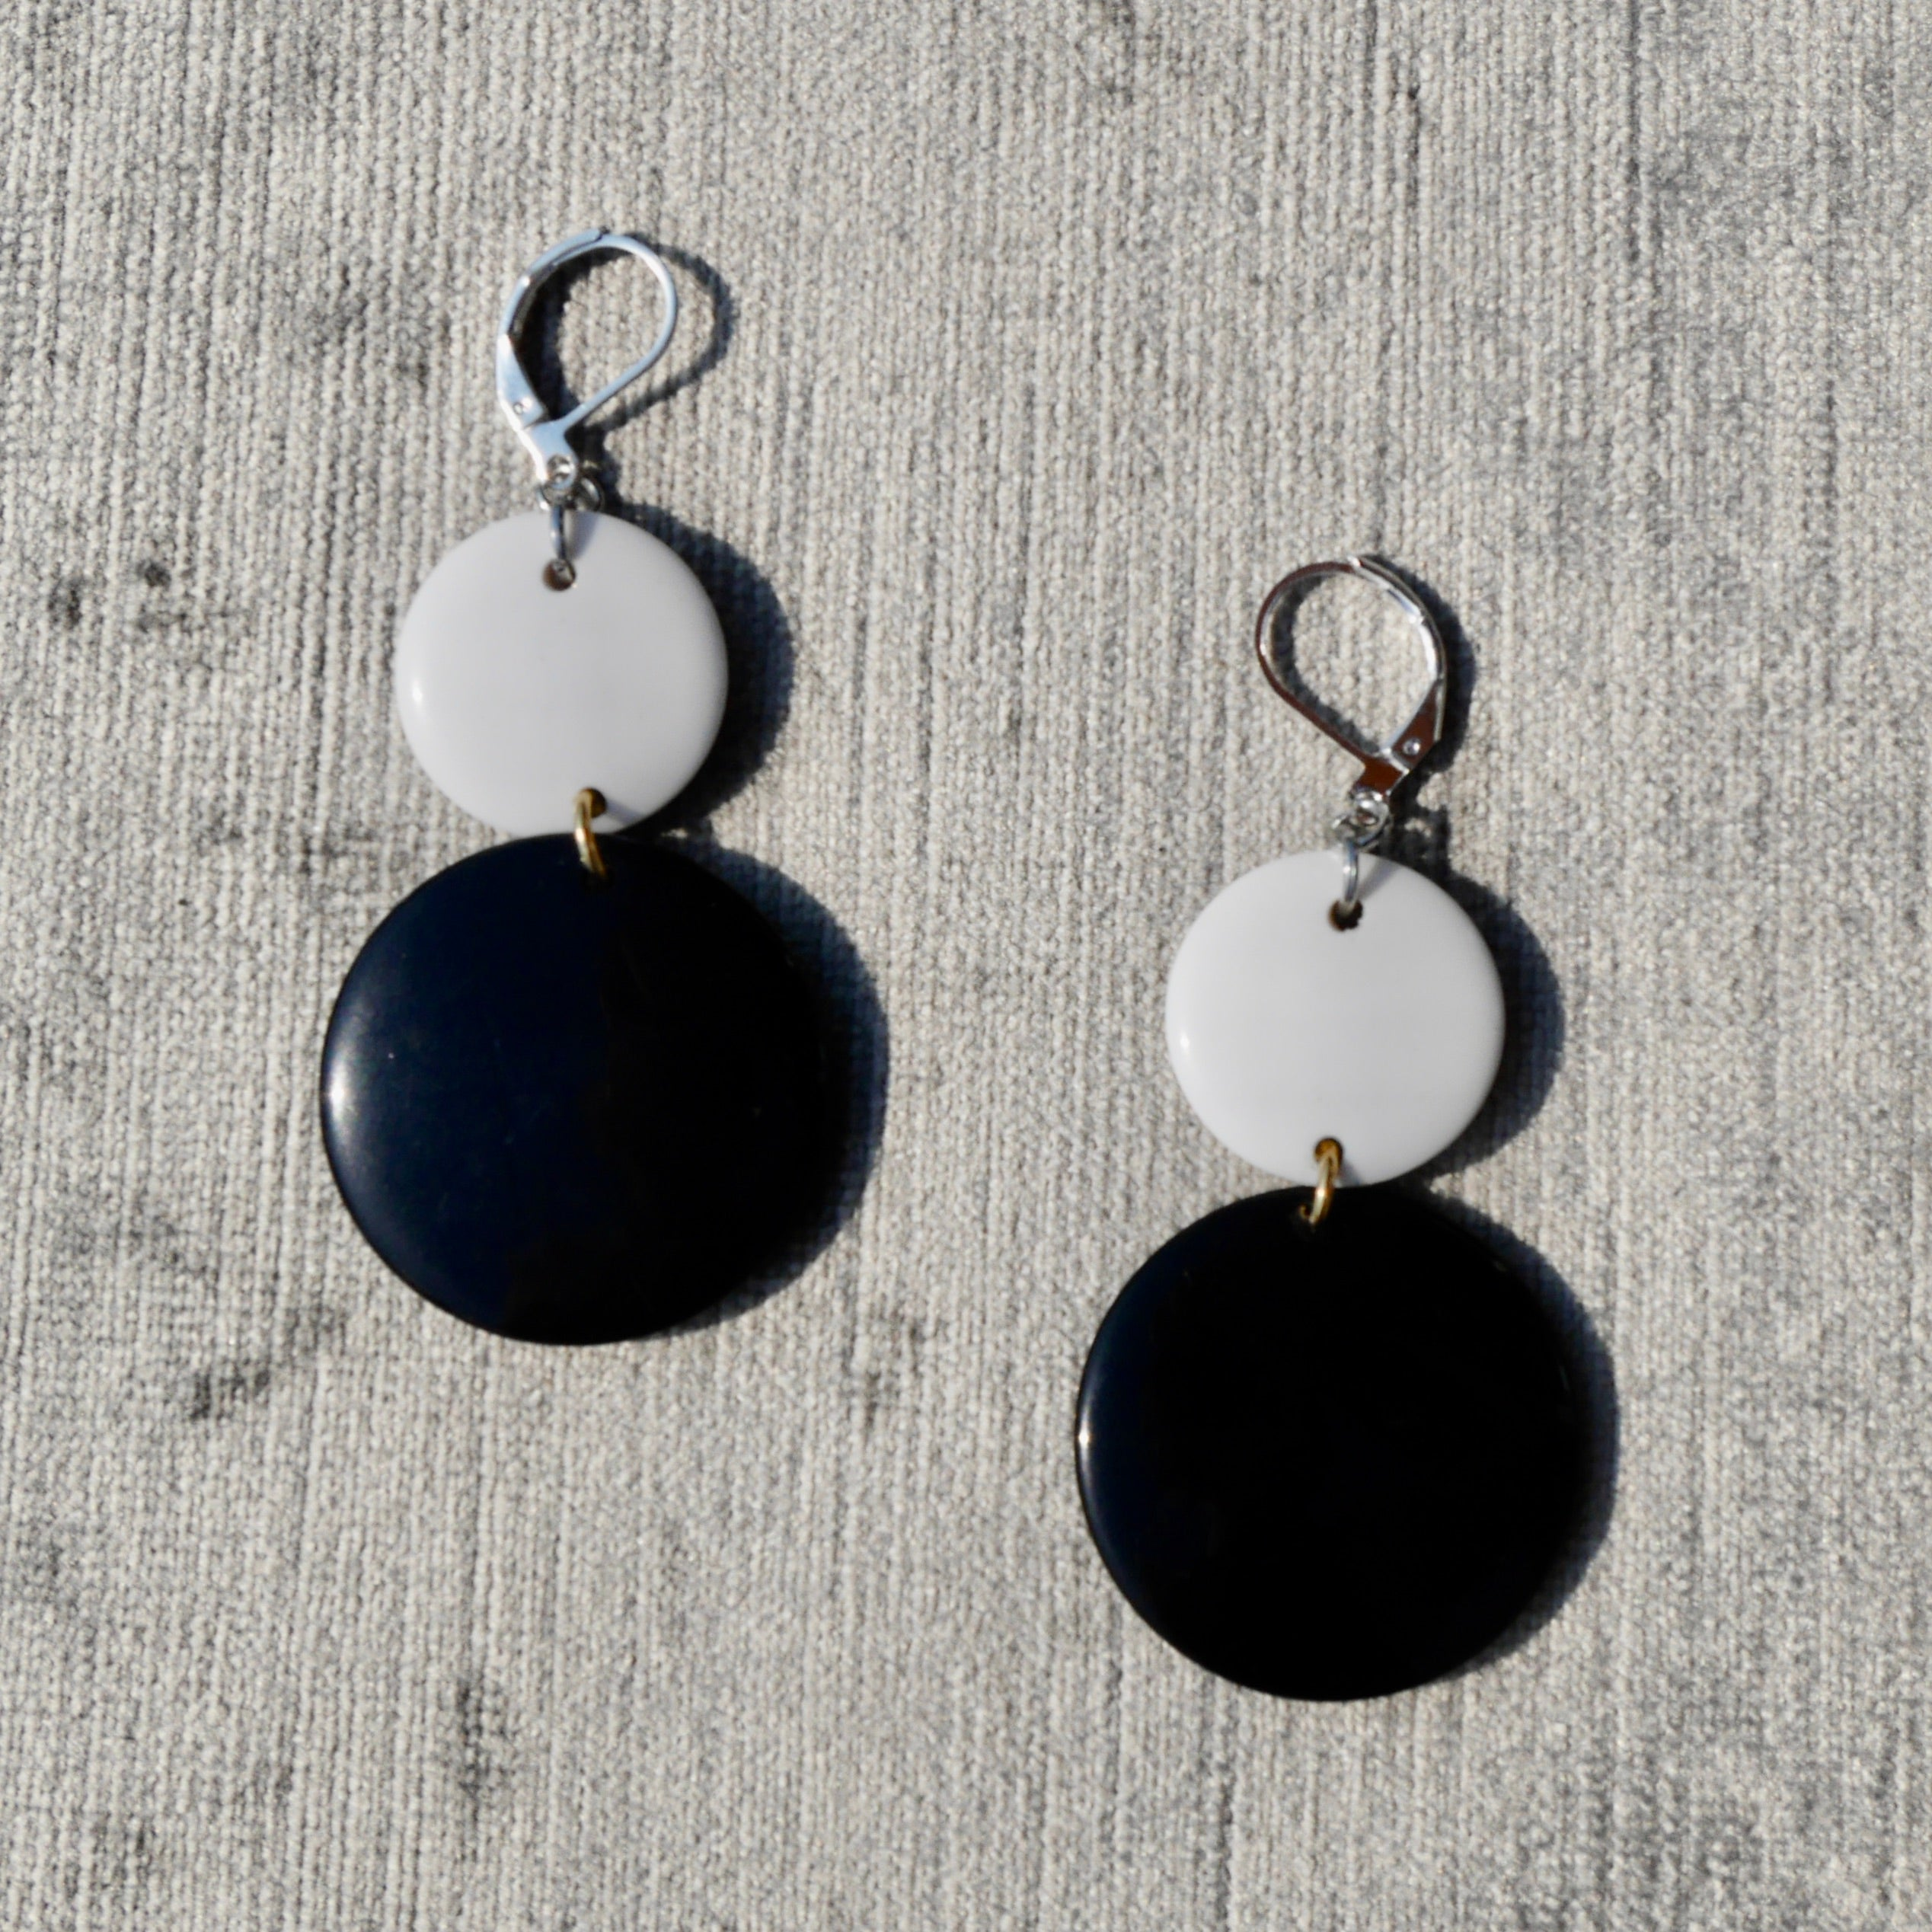 Upcycled B&W 1980s Dangly Earrings